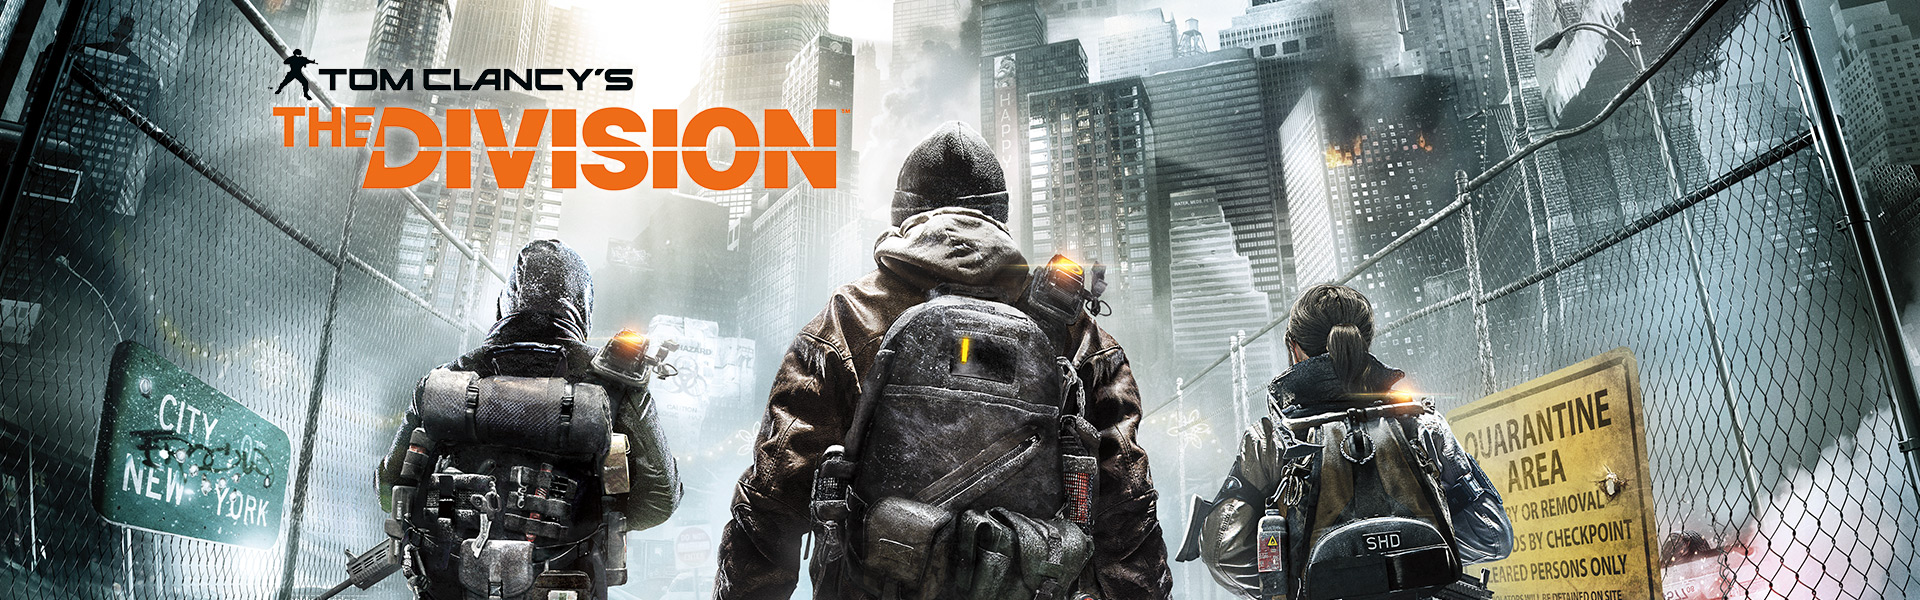 Tom Clancy's The Division, three division agents walk down a quarantined New York street